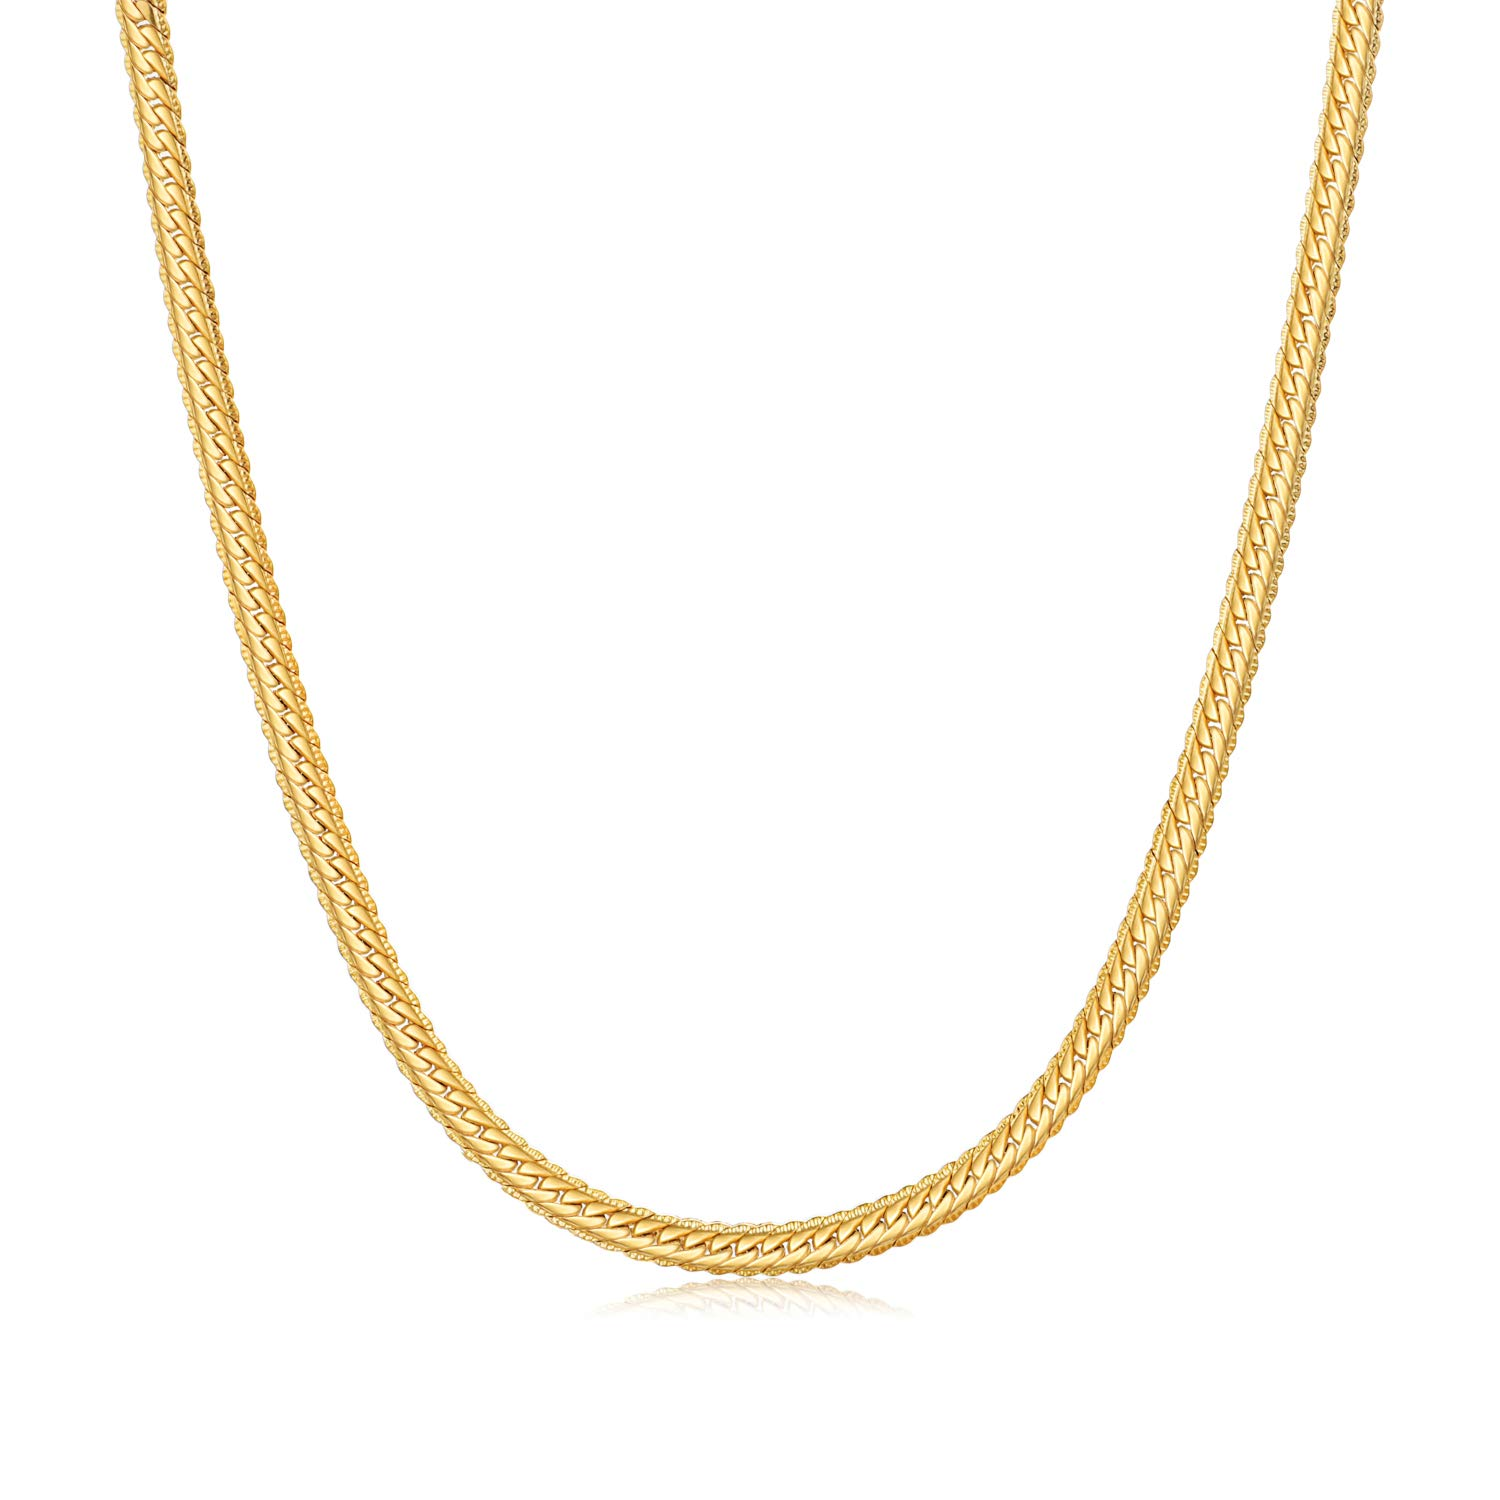 WINNICACA 24K Gold Plated Necklace Mens Cuban Snake Chain Necklace Womens Mens Girls 18''-28inch, 3mm-6mm Wide 3mm Wide Unisex